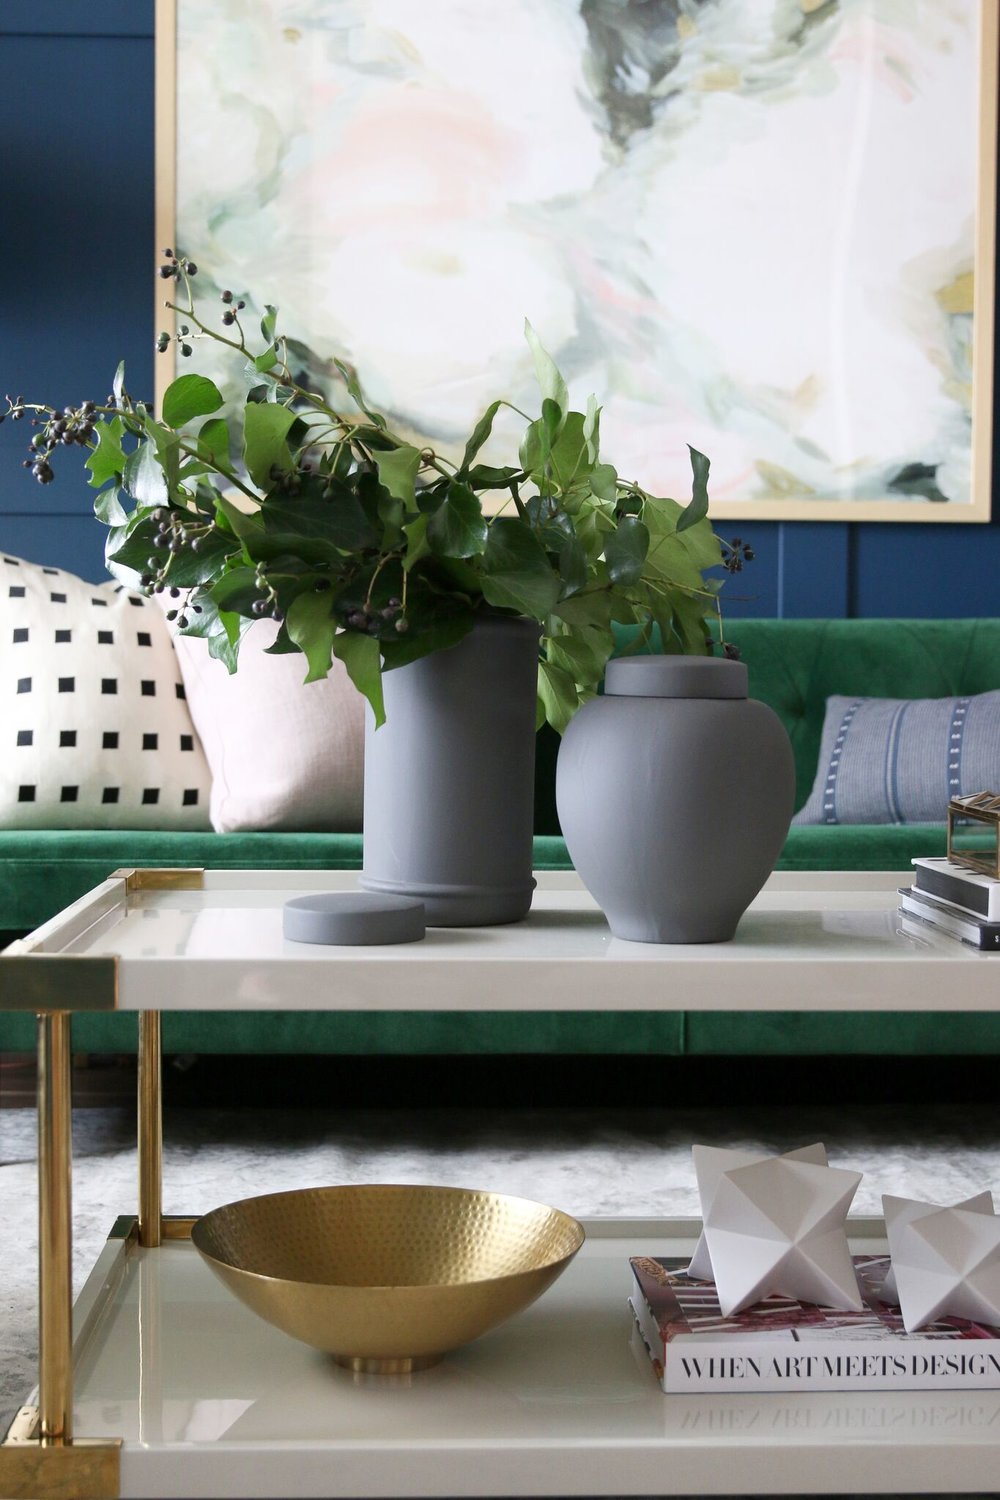 Vase and plants atop the coffee table